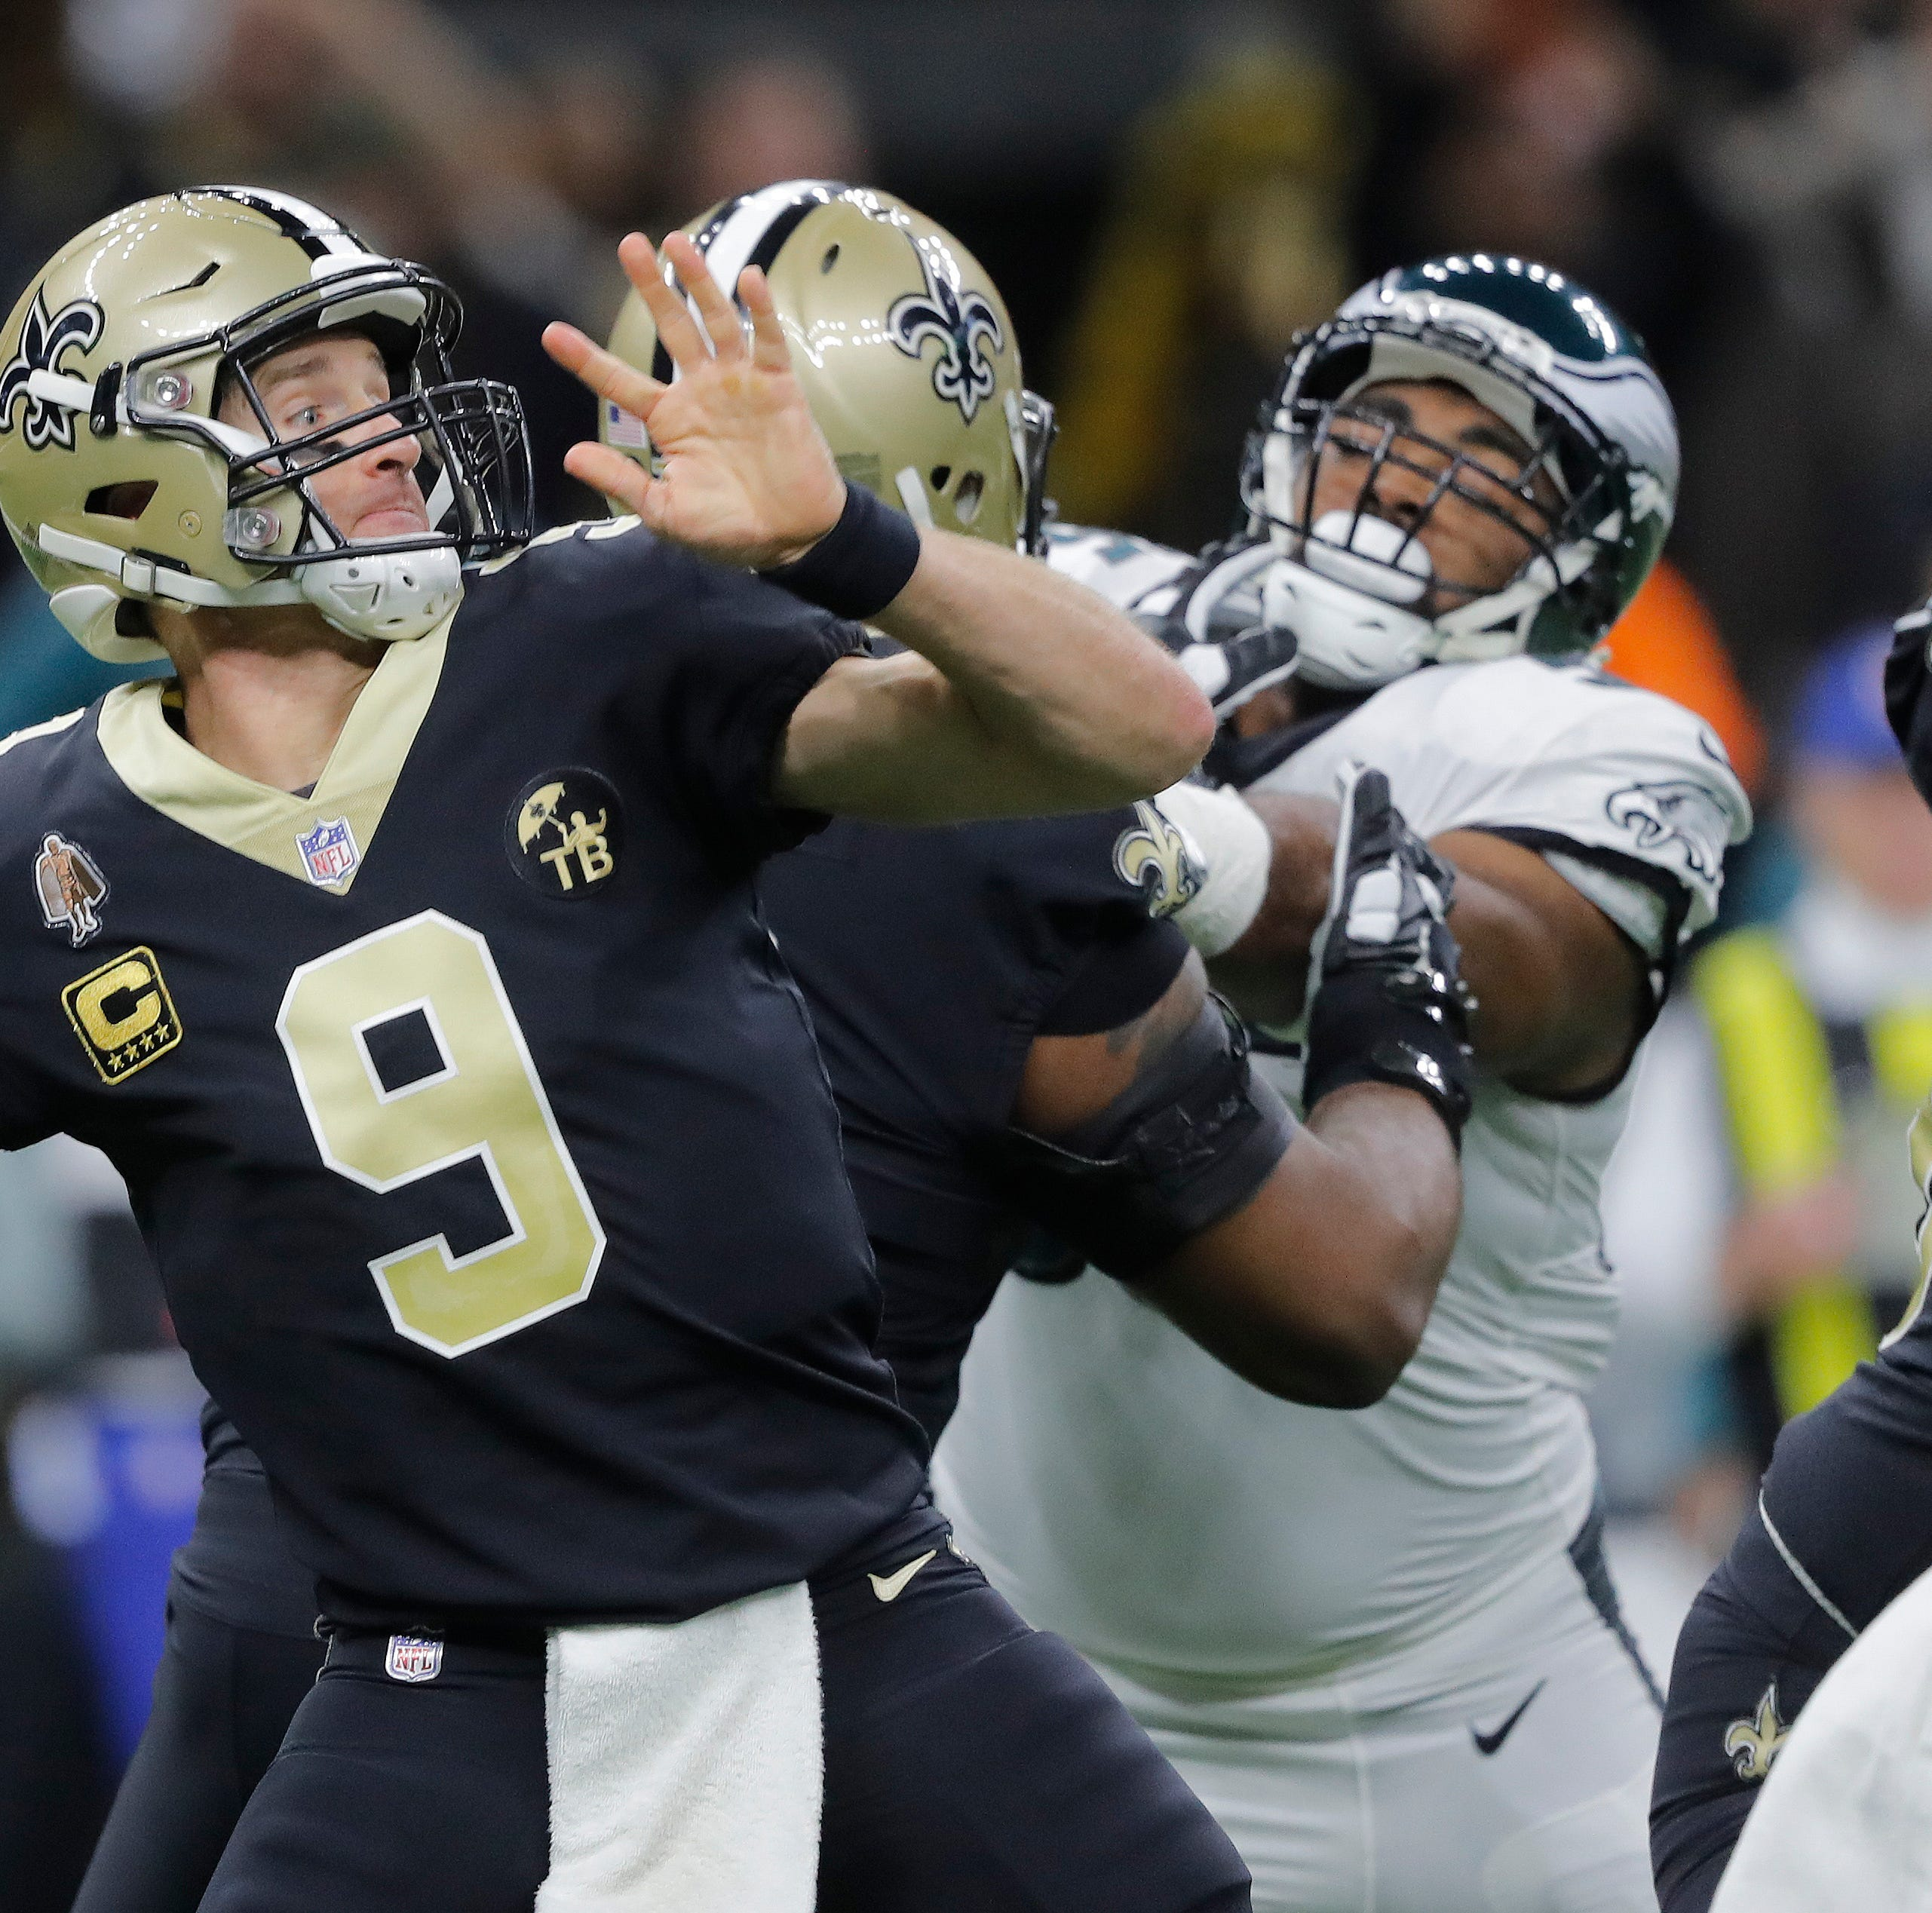 Eagles fly high, then south as Saints come back to win 20-14 and reach NFC title game